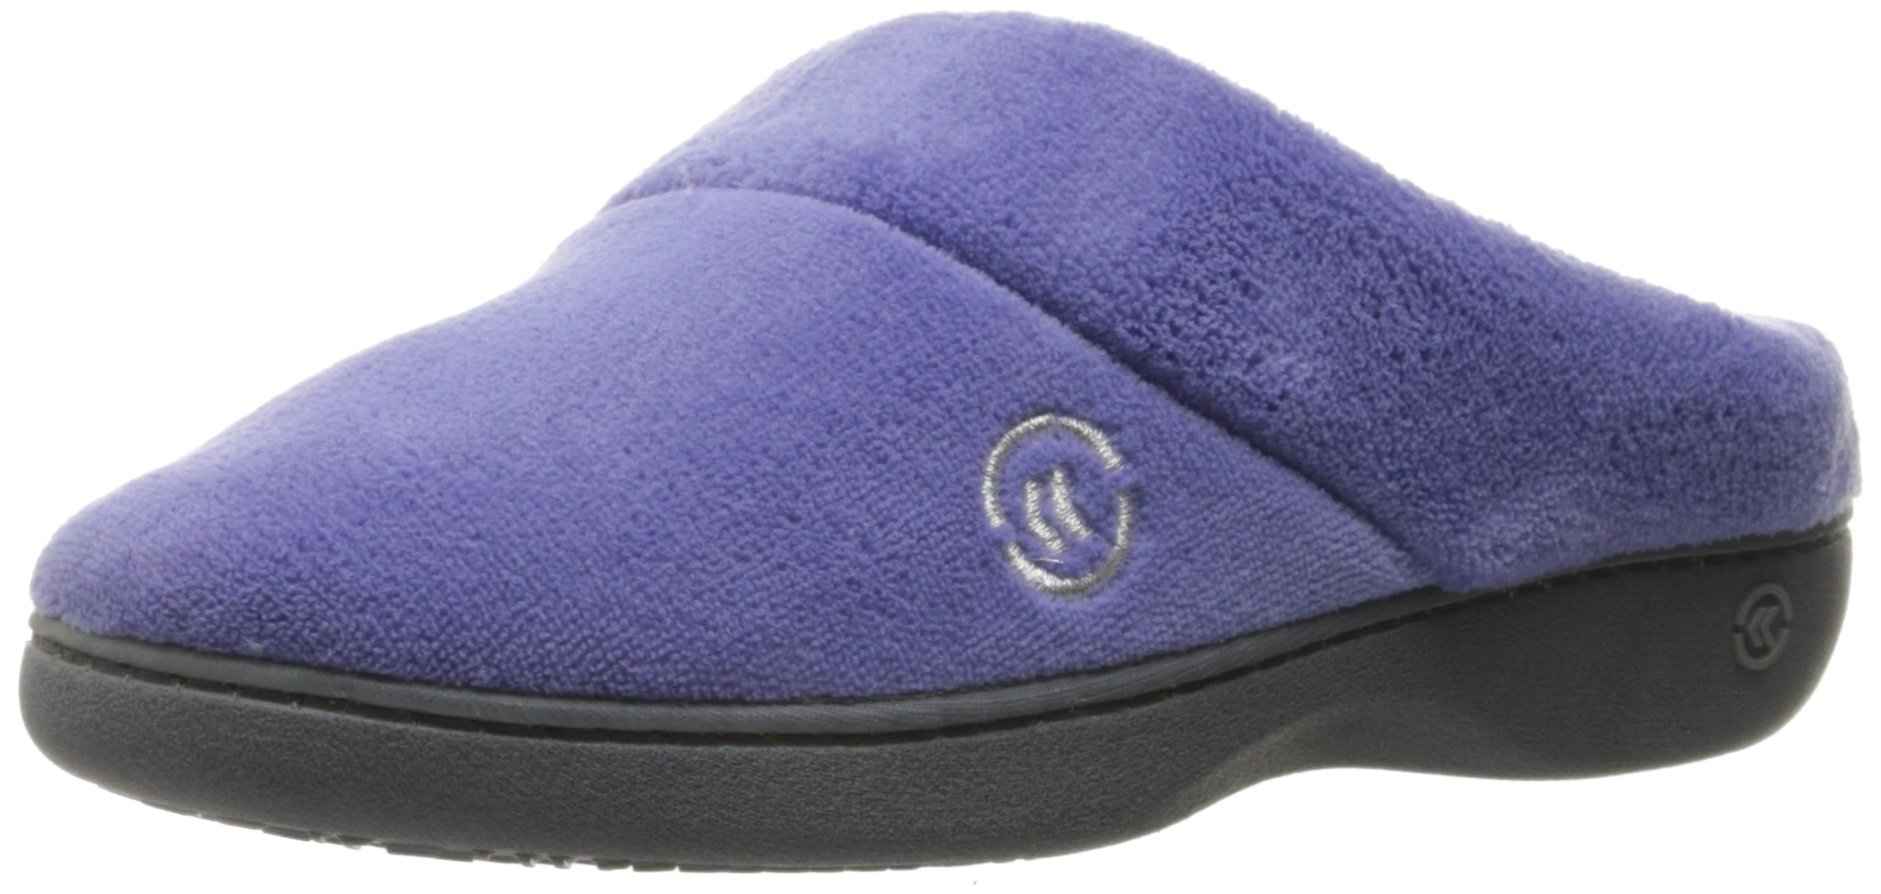 ISOTONER Women's Terry Slip On Cushioned Slipper with Memory Foam for Indoor/Outdoor Comfort and Arch Support, Deep Periwinkle, Large/8.5-9 M US